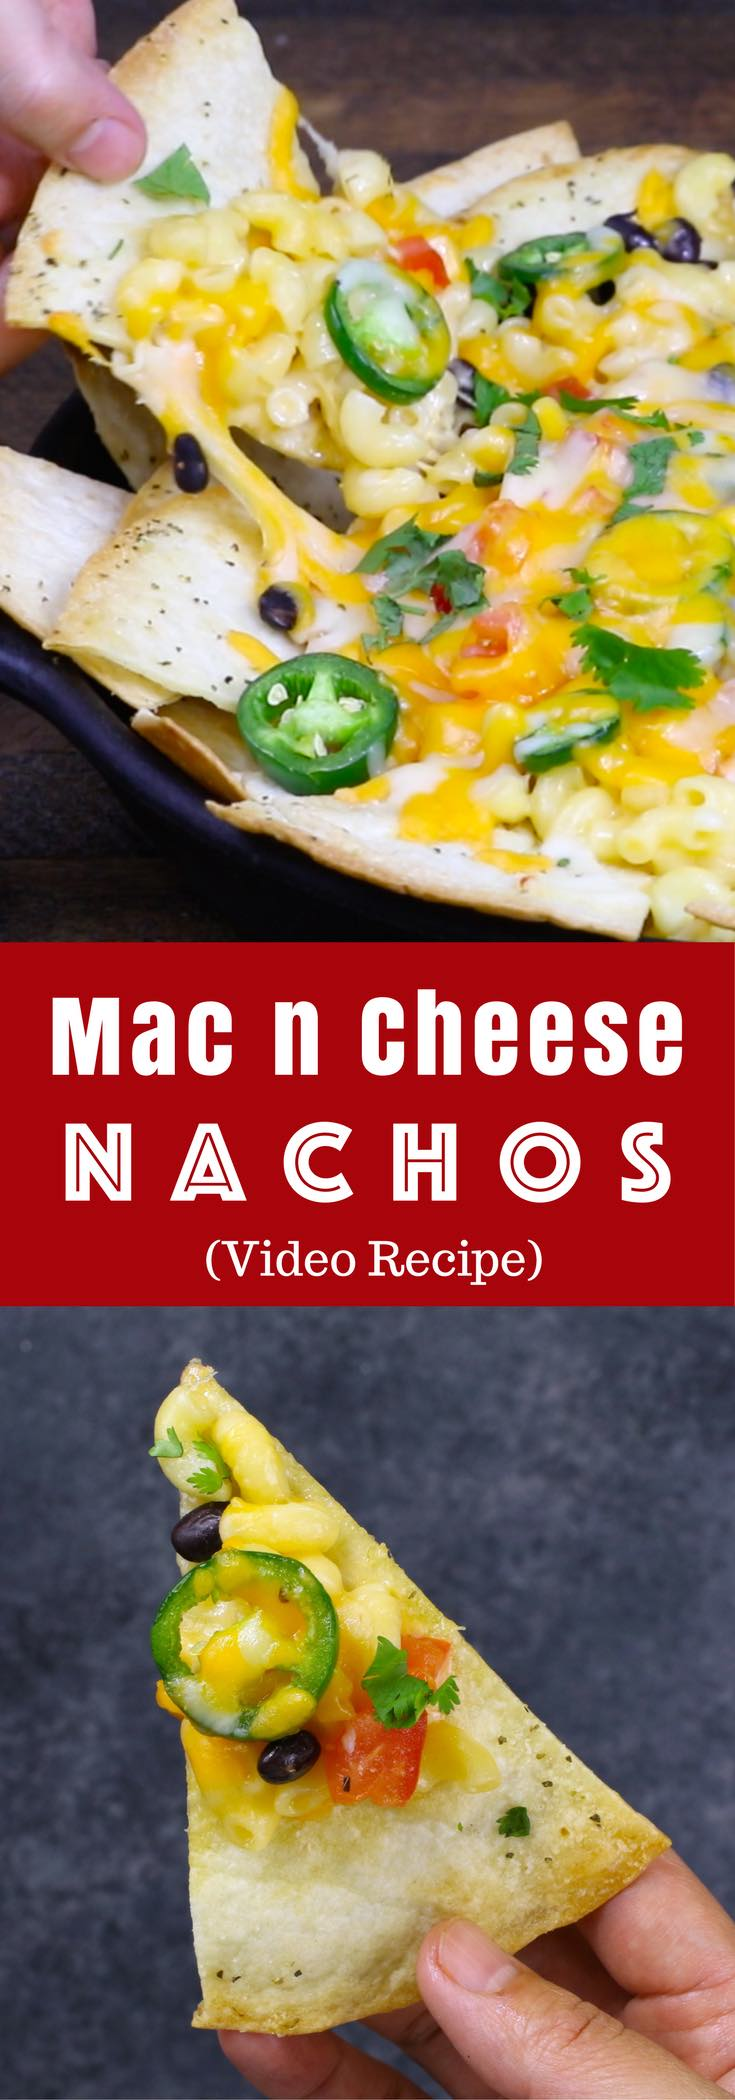 Mac and Cheese Nachos – Soft and creamy Mac & Cheese is balanced with crispy nachos, making perfect finger food for any party! So good! Video recipe. | Tipbuzz.com